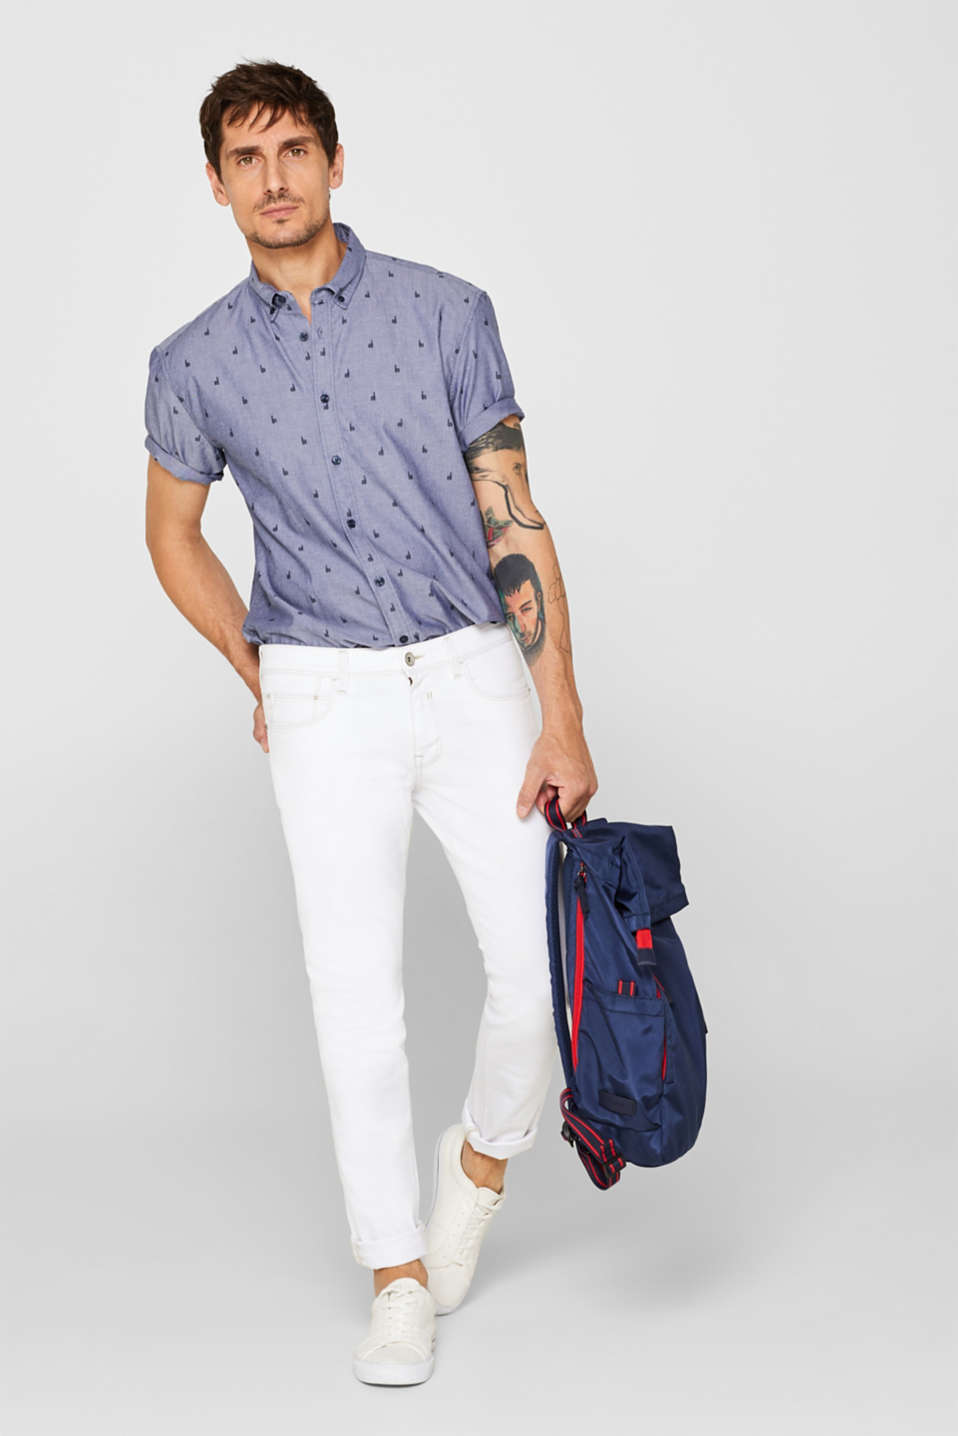 Shirts woven Regular fit, NAVY 2, detail image number 1